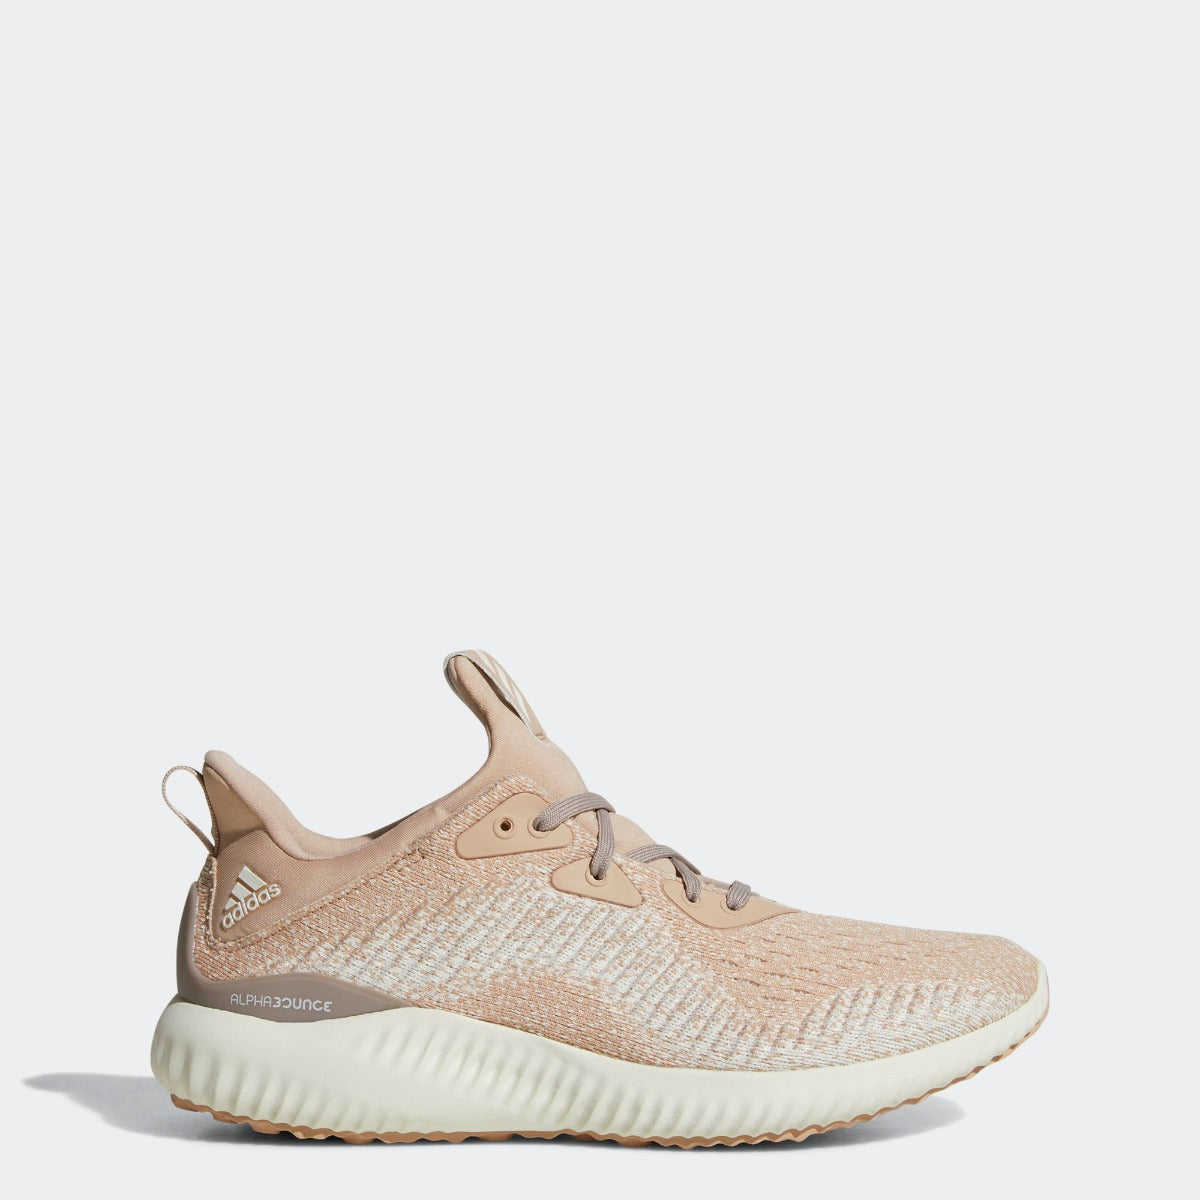 3eb8a0b0c Women s adidas Running Alphabounce 1 Shoes Ash Pearl with Legacy White